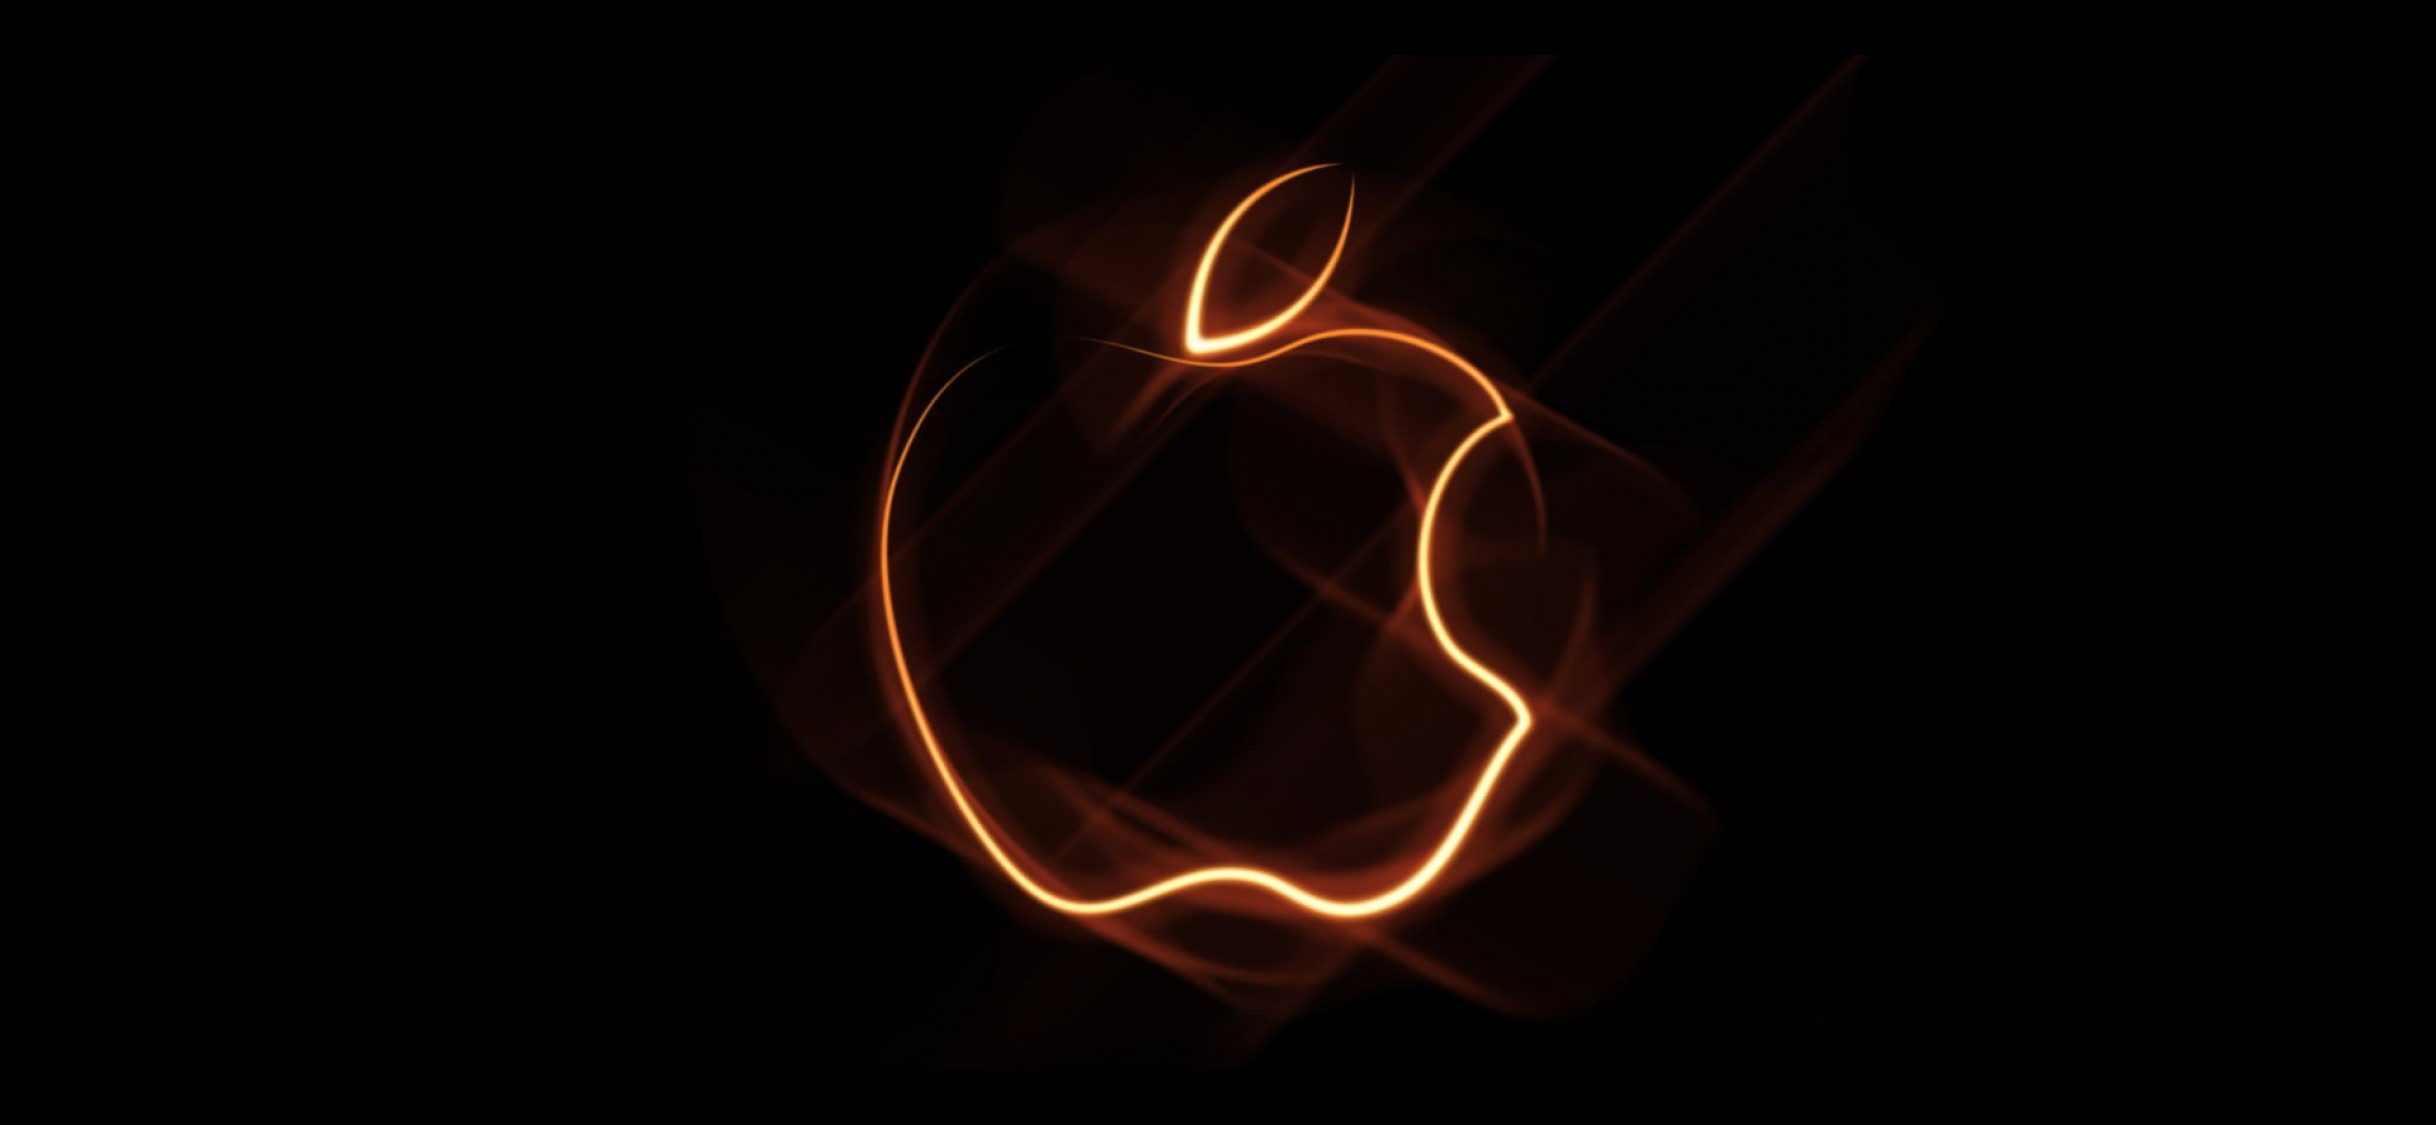 Ultra Hd Apple Wallpaper 4k 2355035 Hd Wallpaper